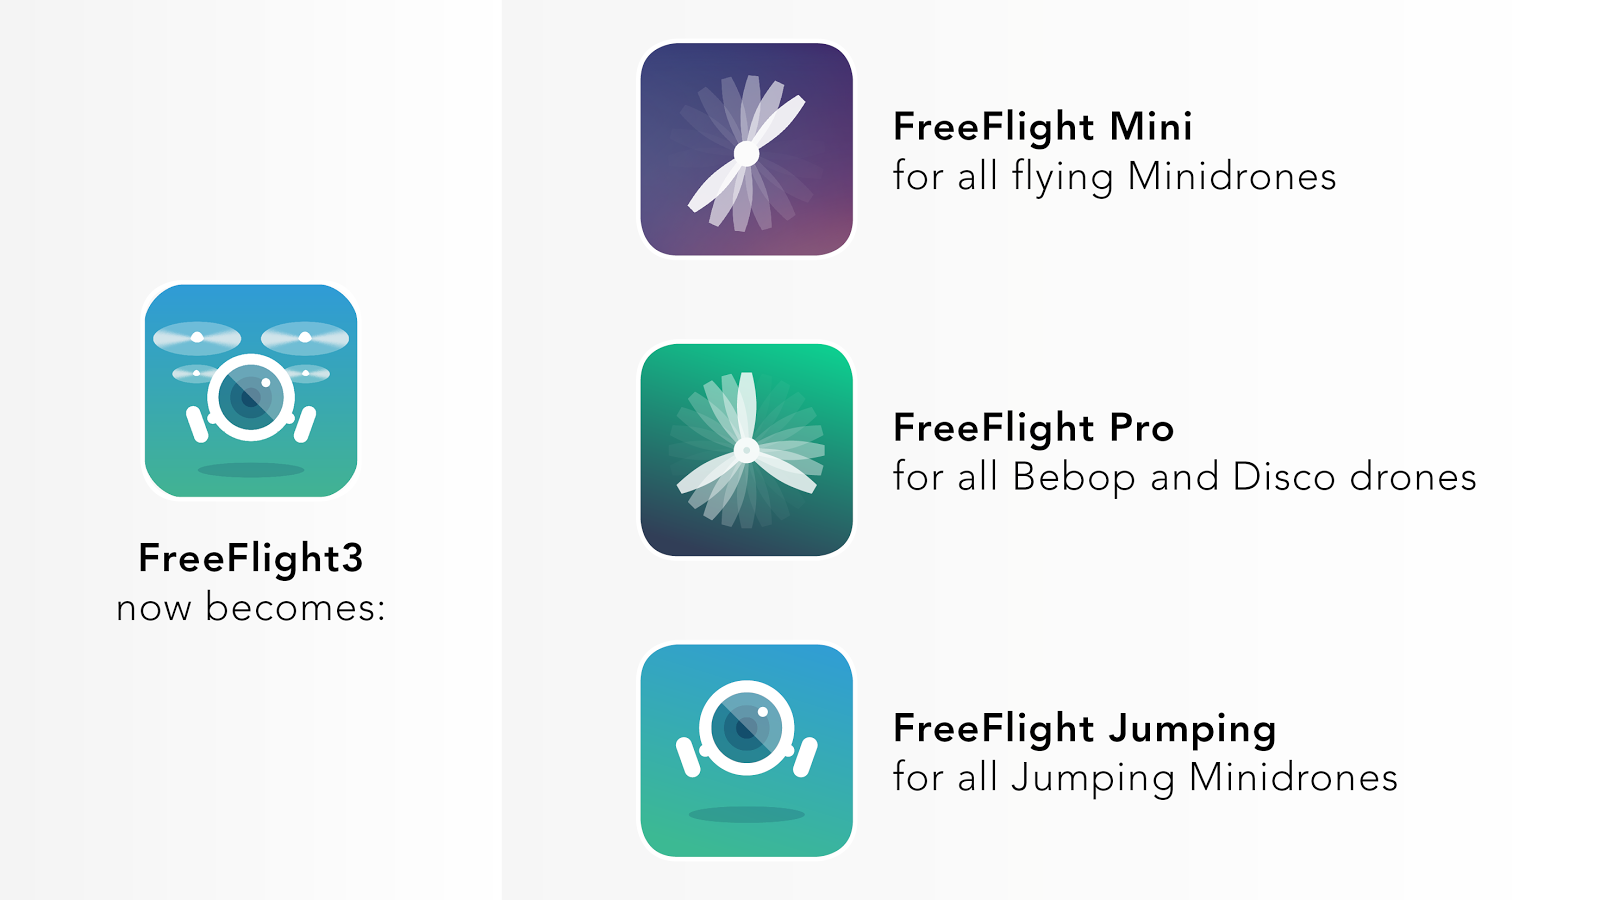 FreeFlight Pro: captura de pantalla